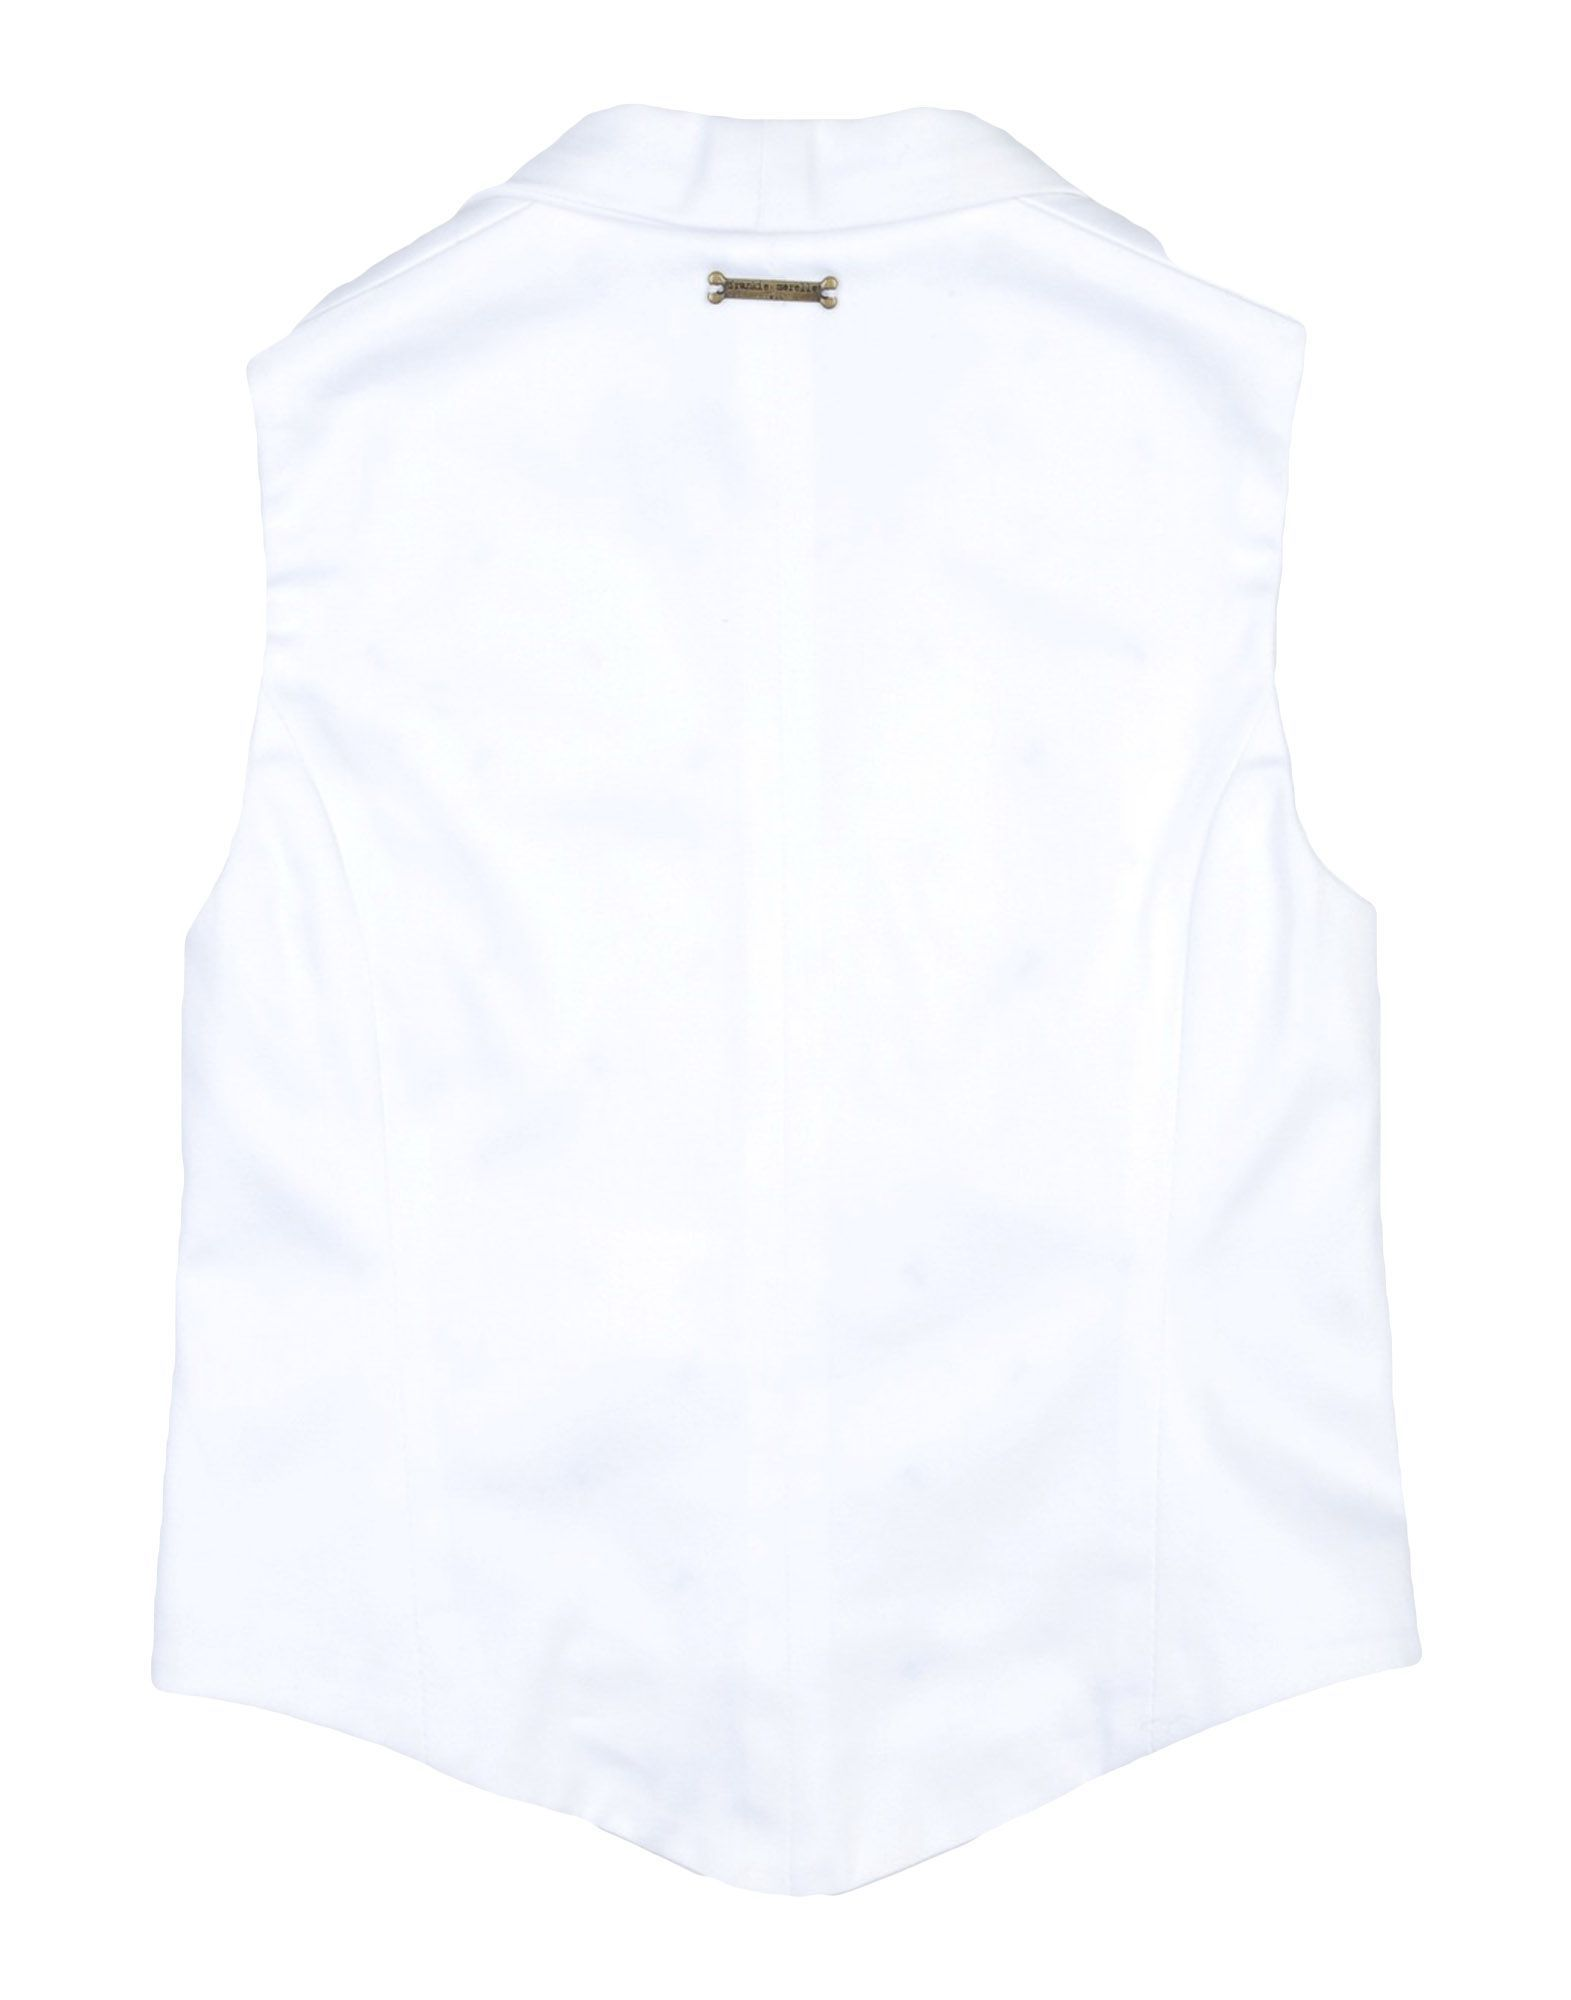 SUITS AND JACKETS Frankie Morello White Boy Cotton